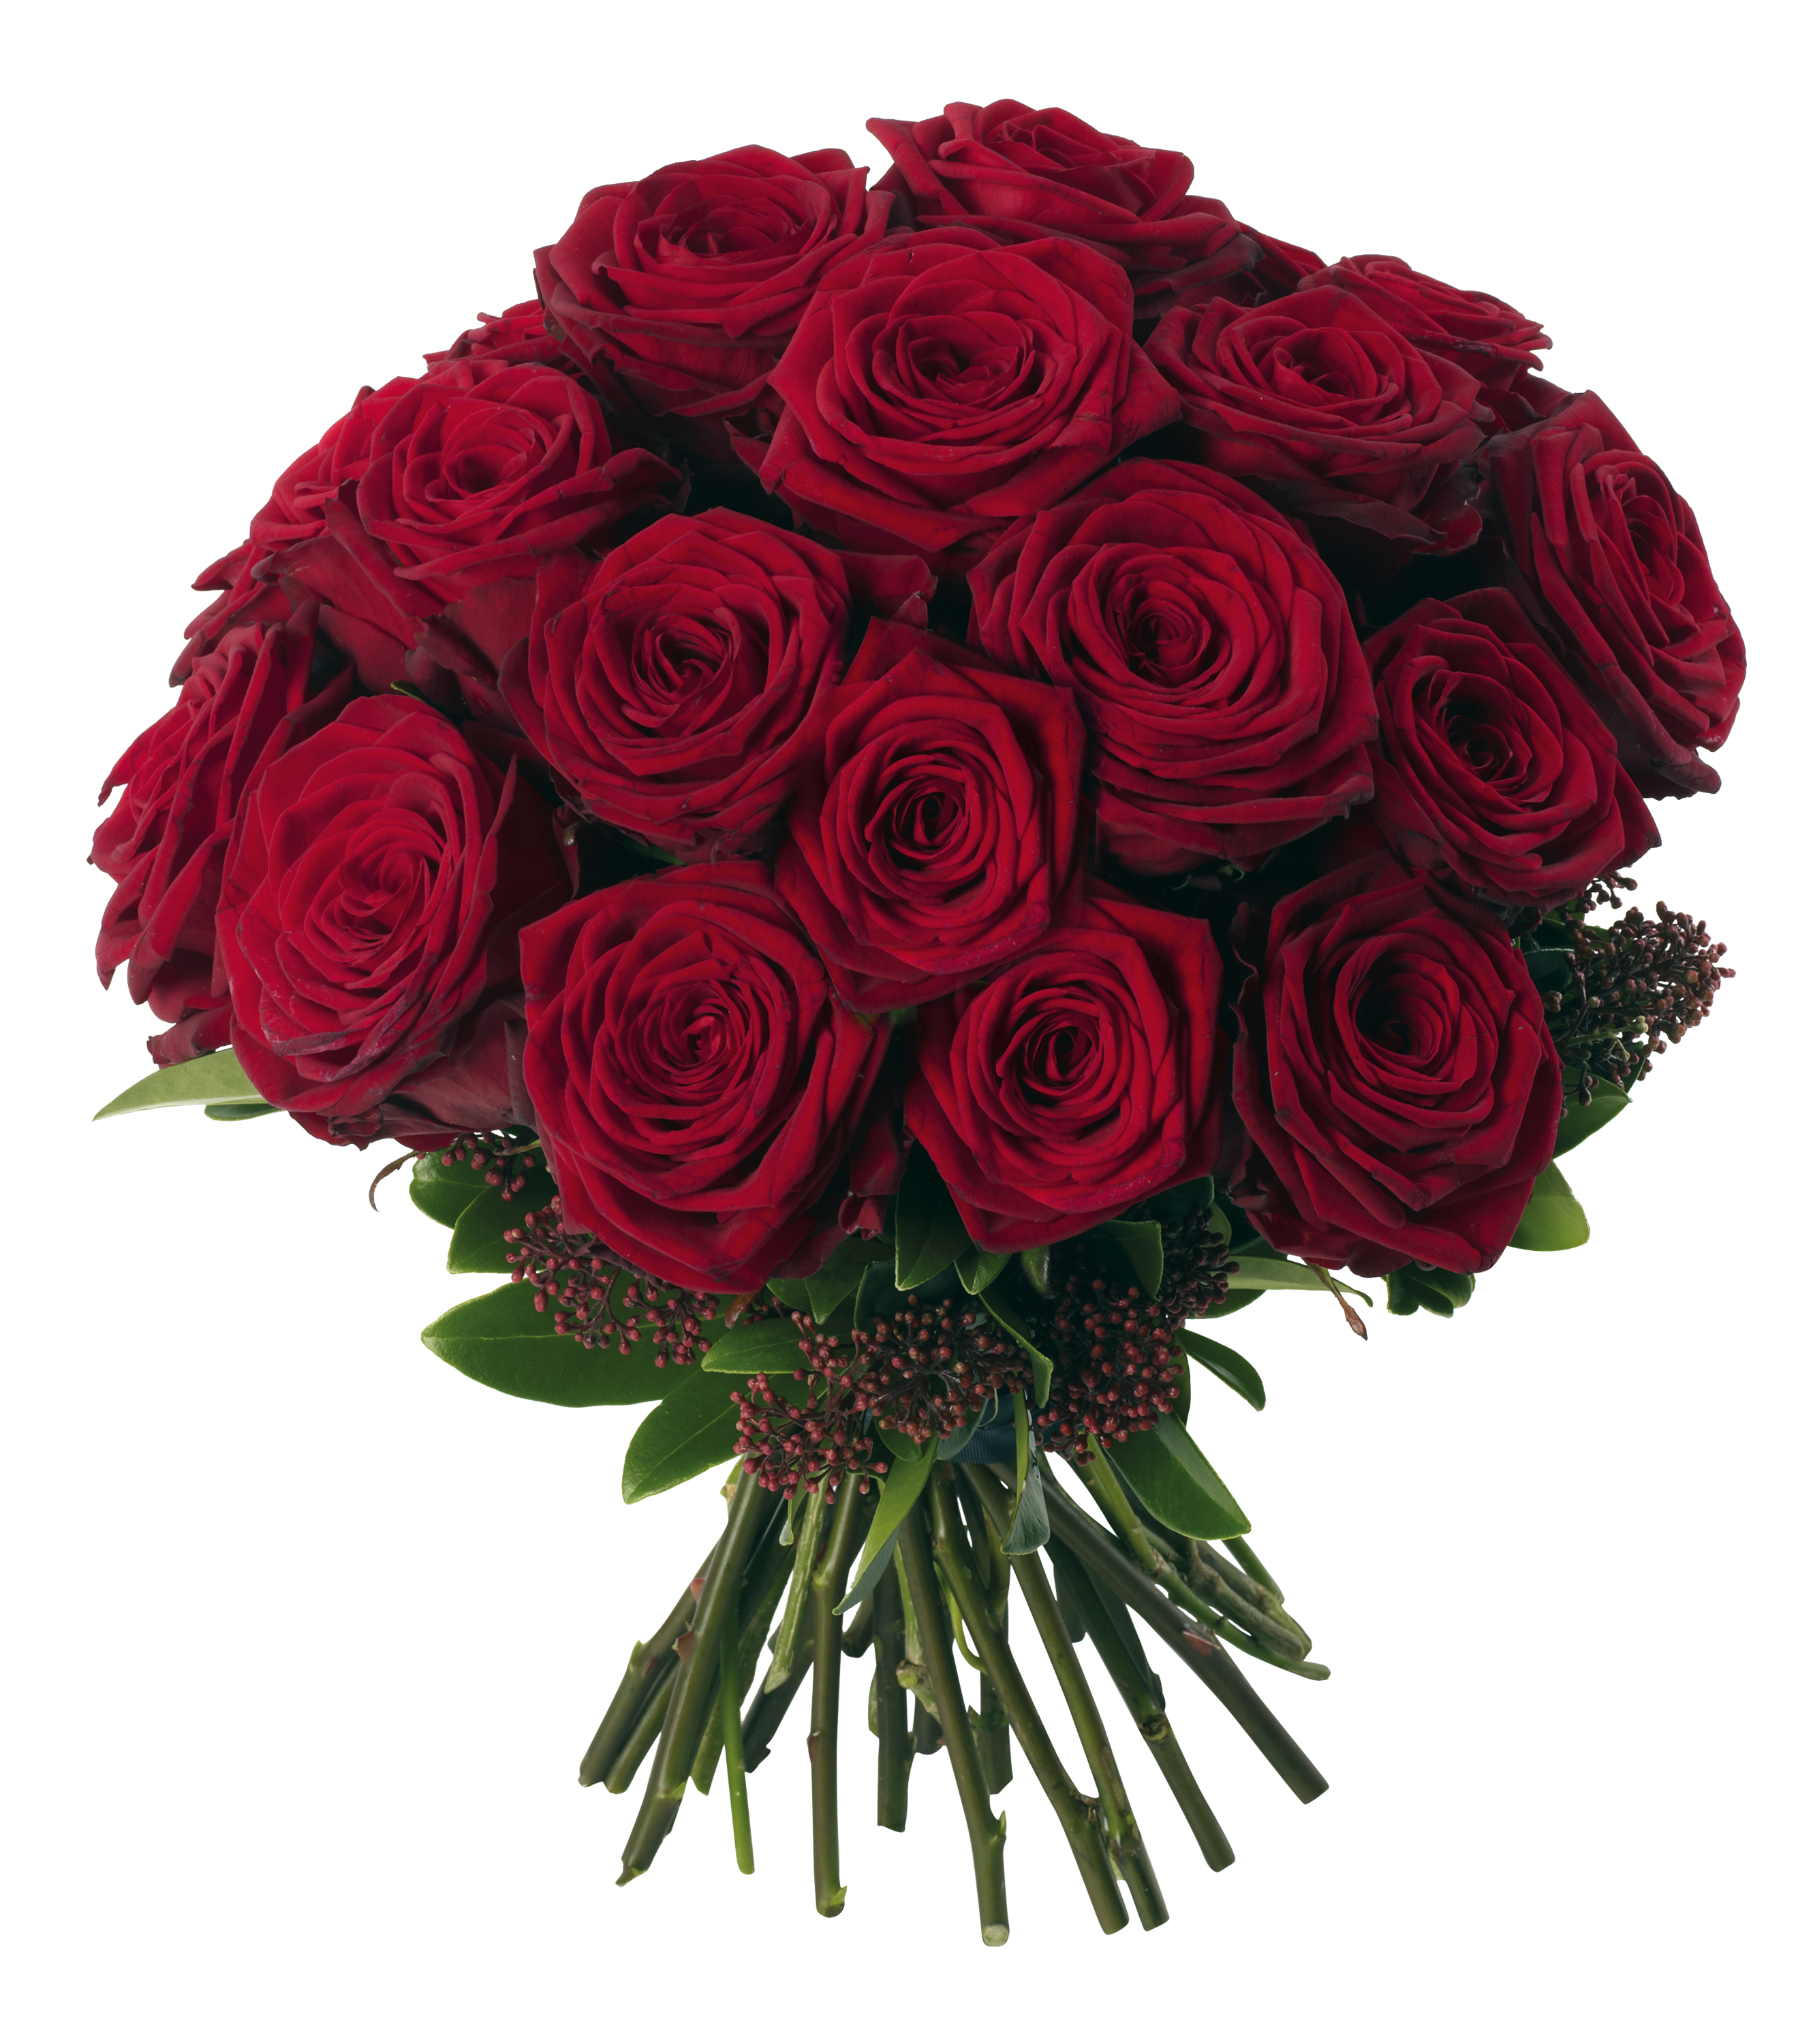 Rose bouquet transparent png. Red roses clipart picture